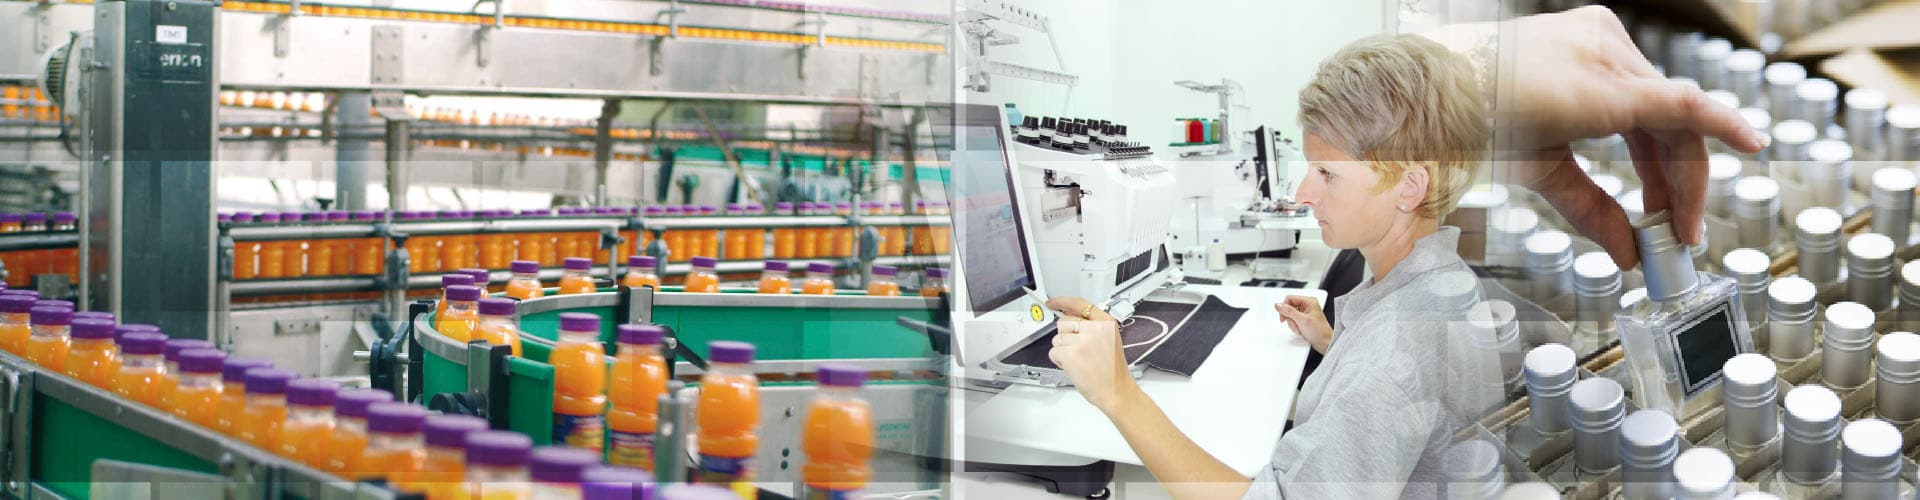 Automate the management of product quality control